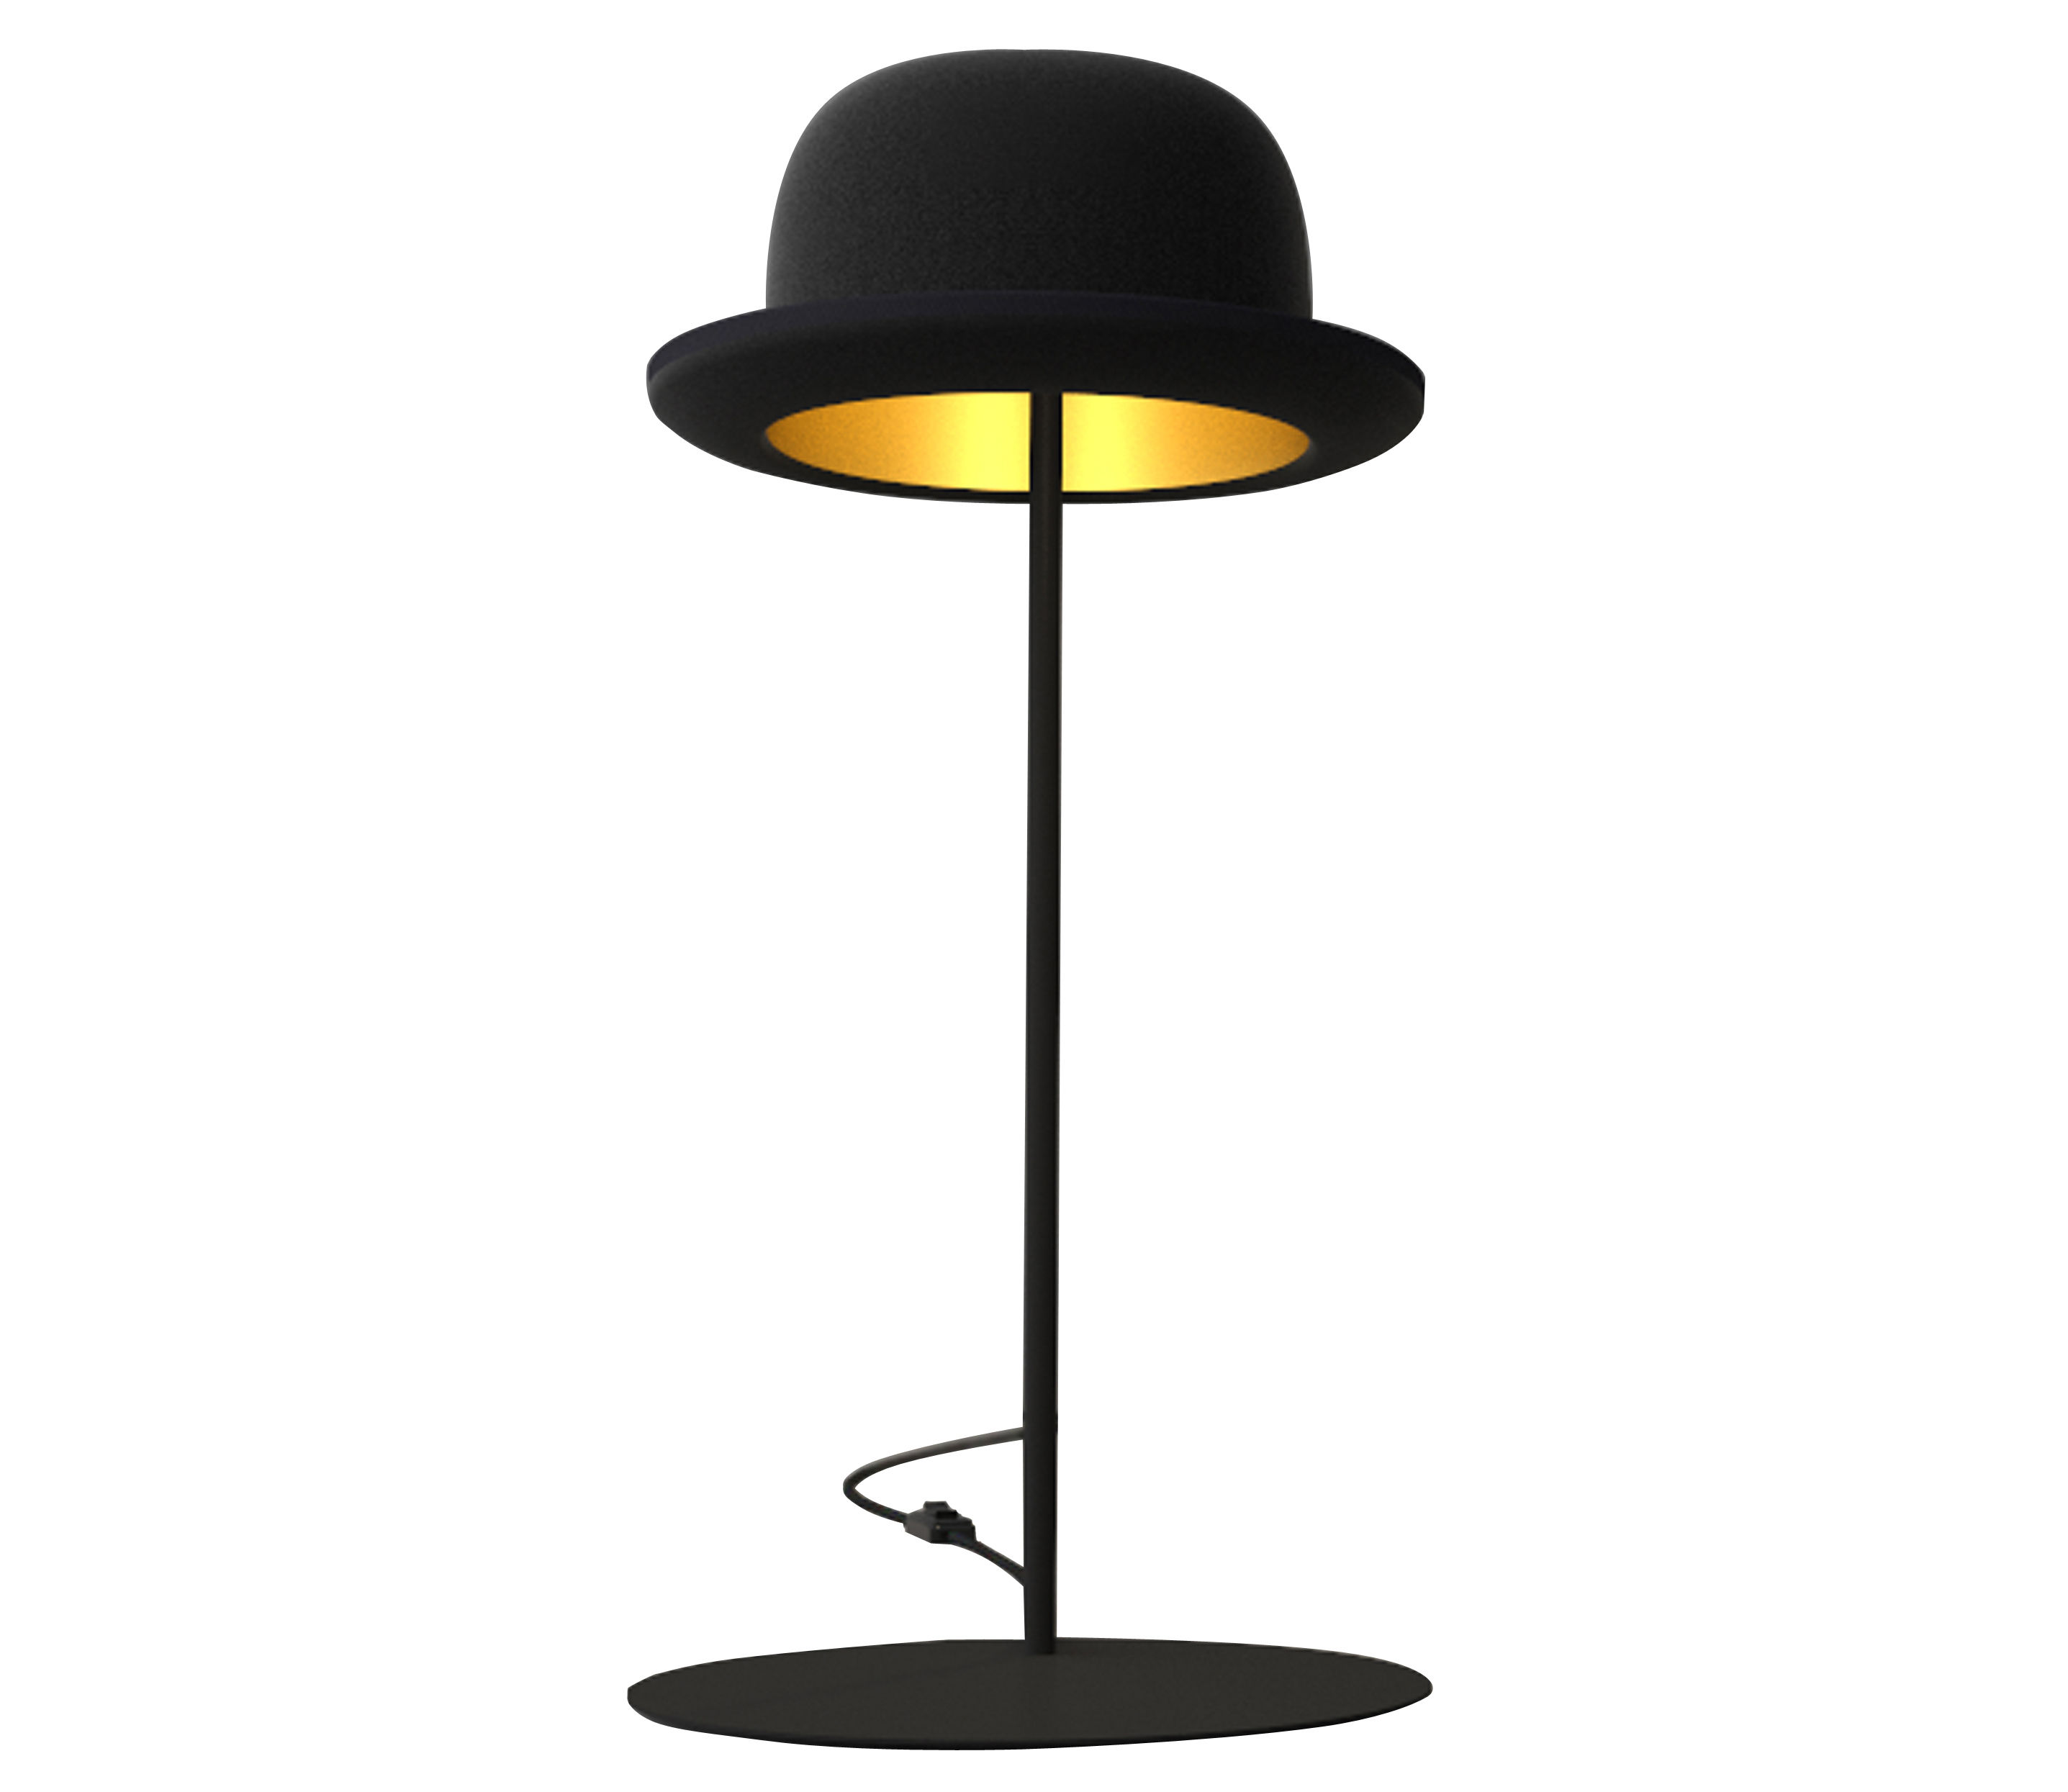 Lighting - Table Lamps - Jeeves Table lamp by Innermost - Black bowler / Gold inside - Black base - Anodized aluminium, Felted wool